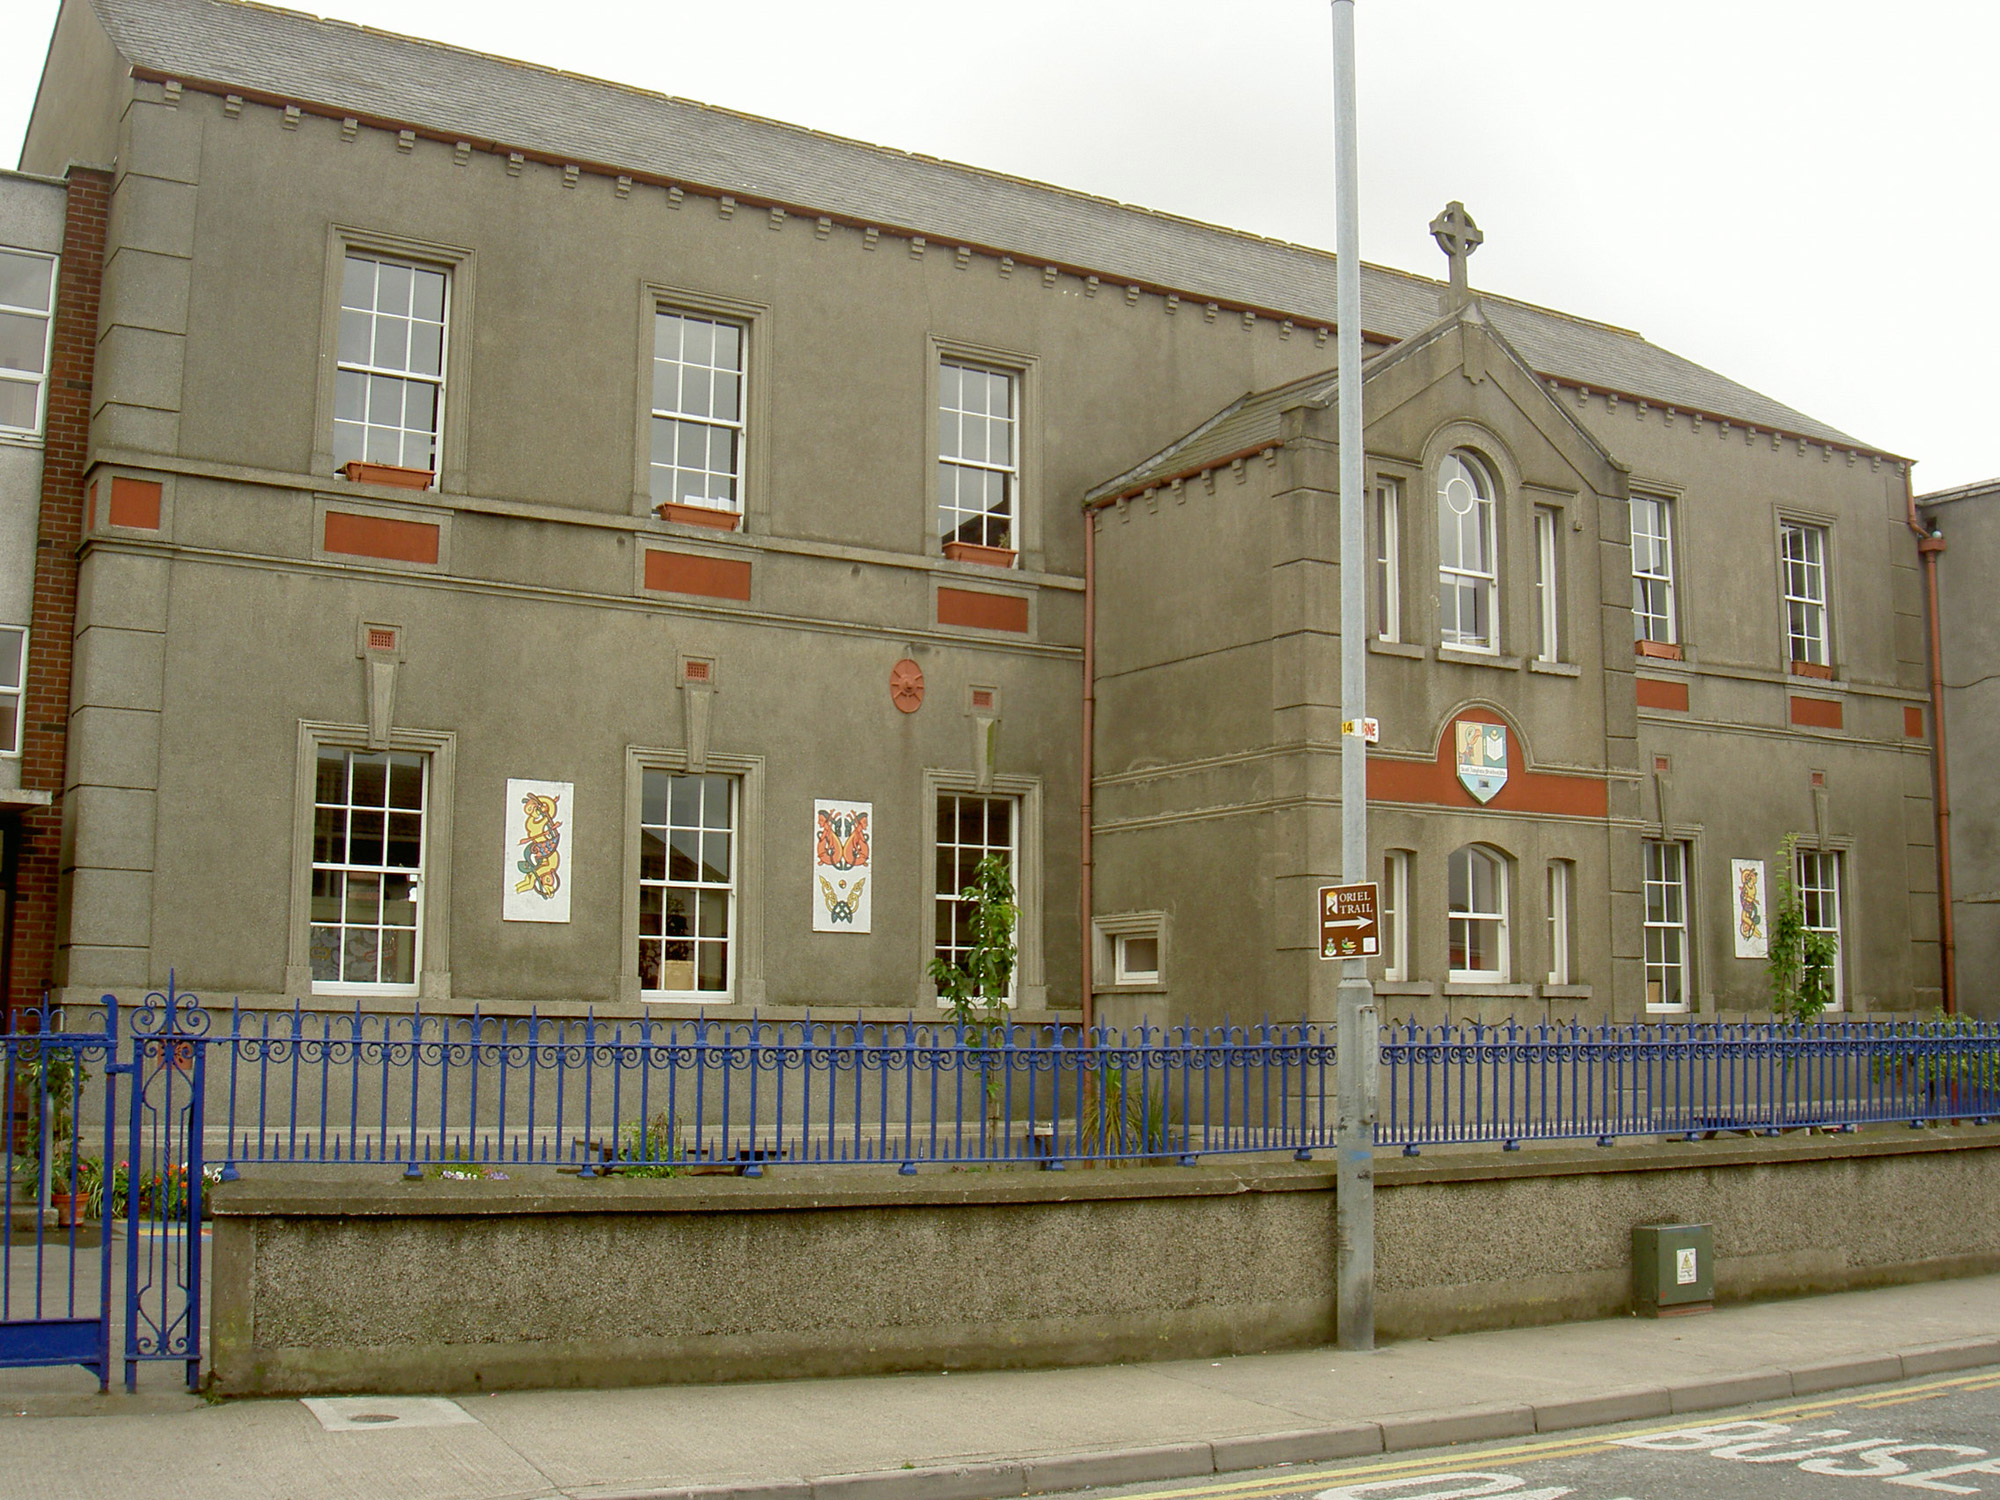 The Christian Brothers' School on Upper Magdalene Street, Drogheda, where T.K. Whitaker attained honours in his Leaving Certificate. © Government of Ireland